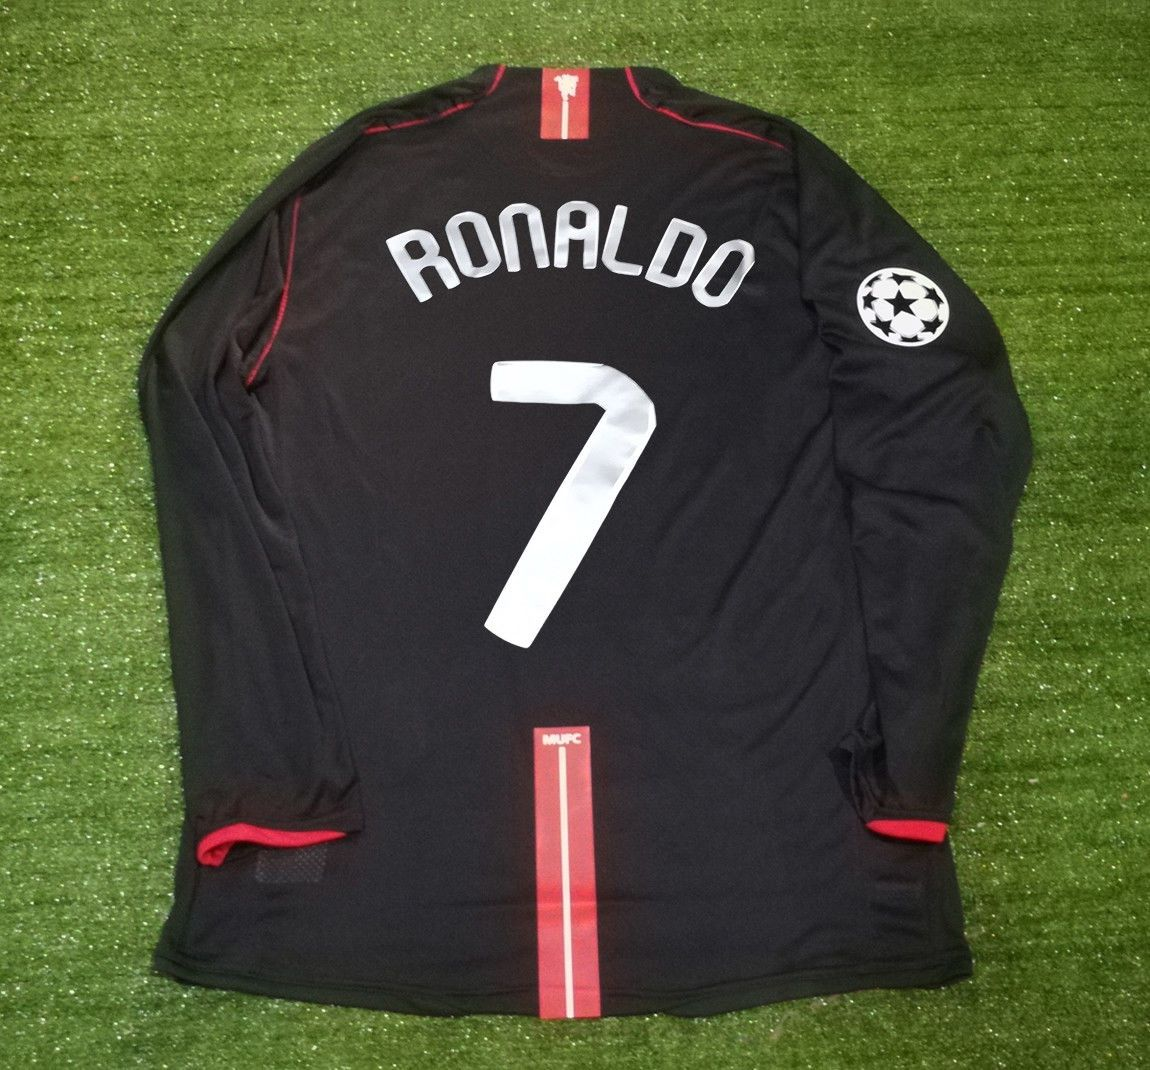 57f8c3d99 Details about Classic Retro Football Shirts RONALDO 7 Manchester United  Away Black 2007-08